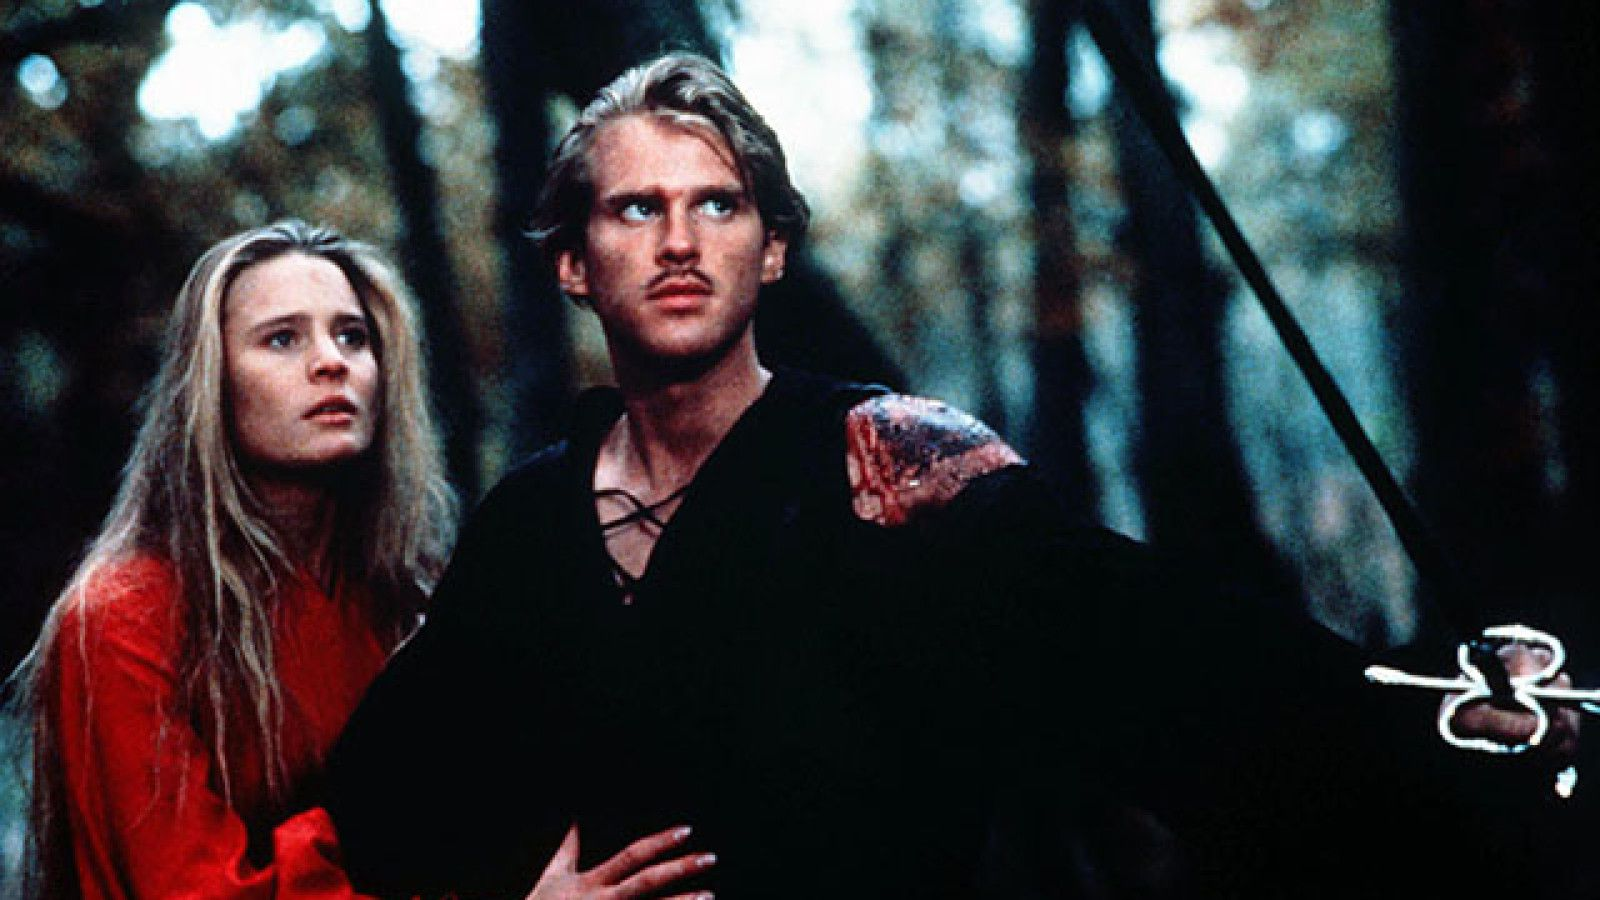 Westkey (Cary Elwes) and the Princess Buttercup (Robin Wright) venture through the forest in The Princess Bride (1987)